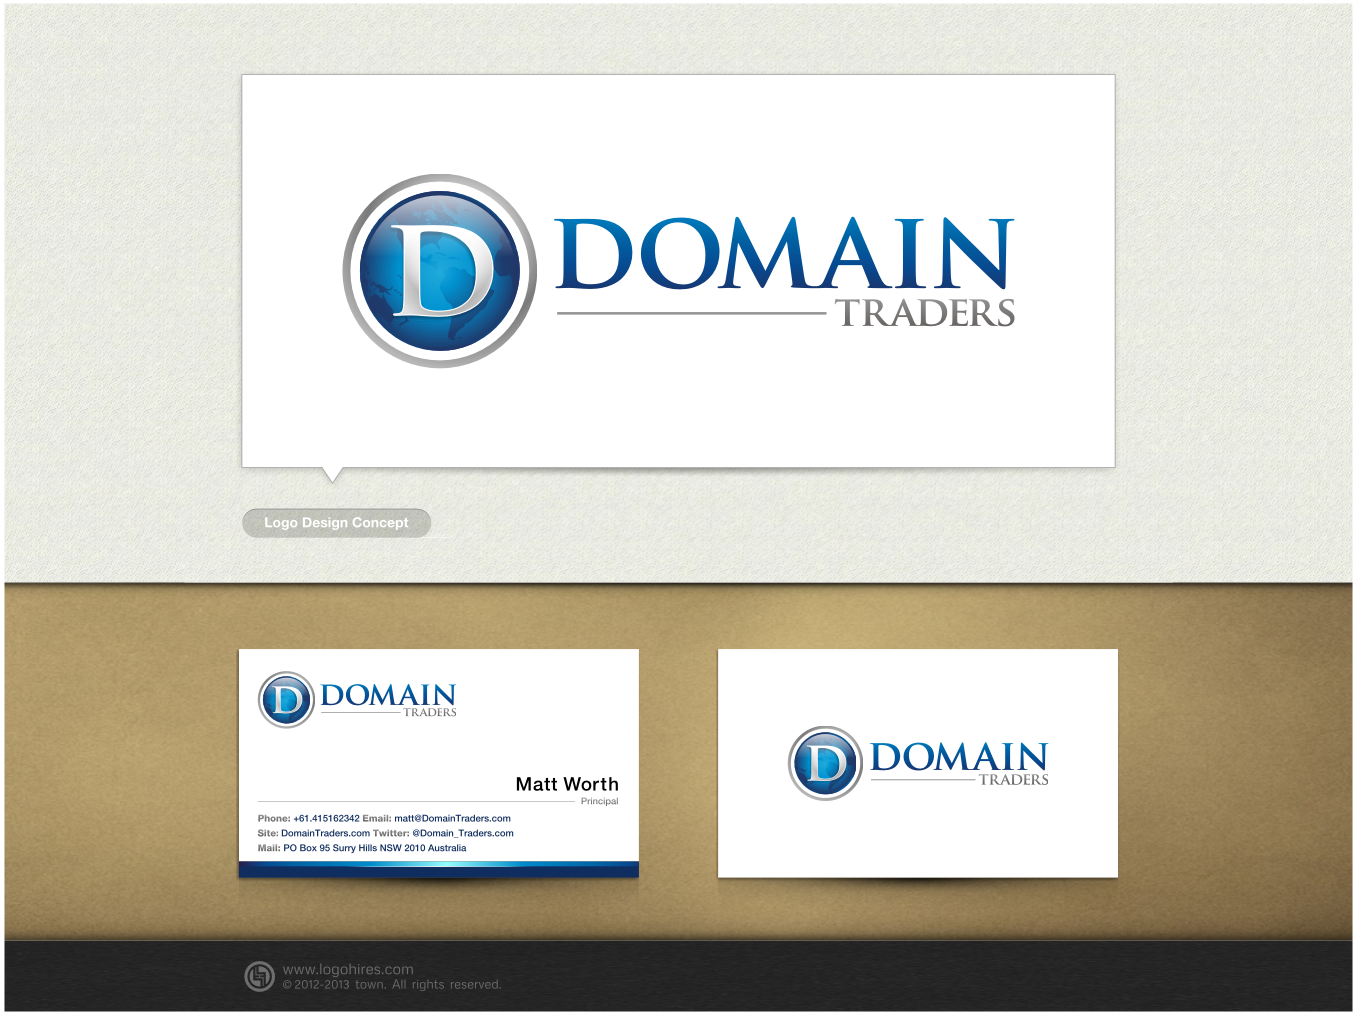 New logo and business card wanted for DomainTraders